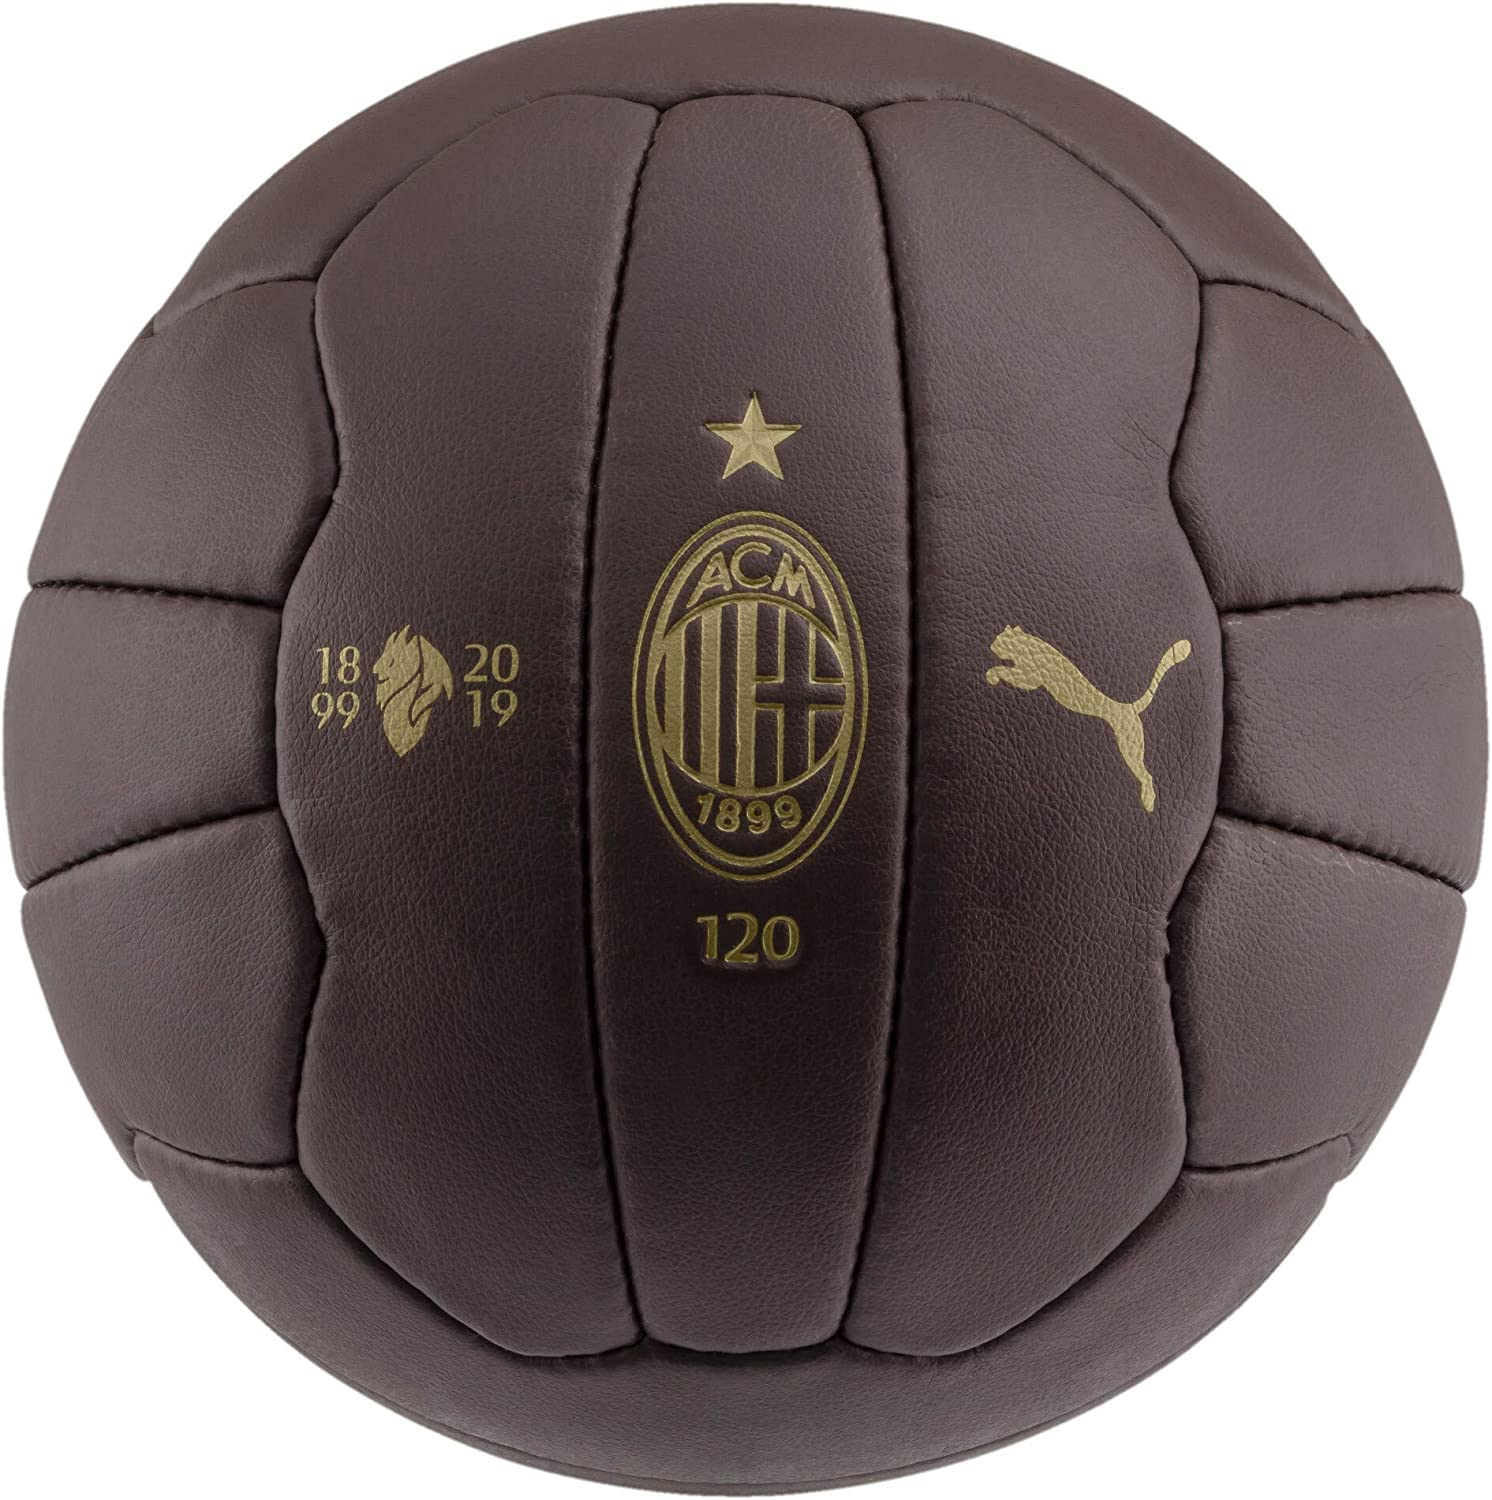 PUMA ACM Fan Ball 120 Balón, Adultos Unisex, Puce-Victory Gold ...